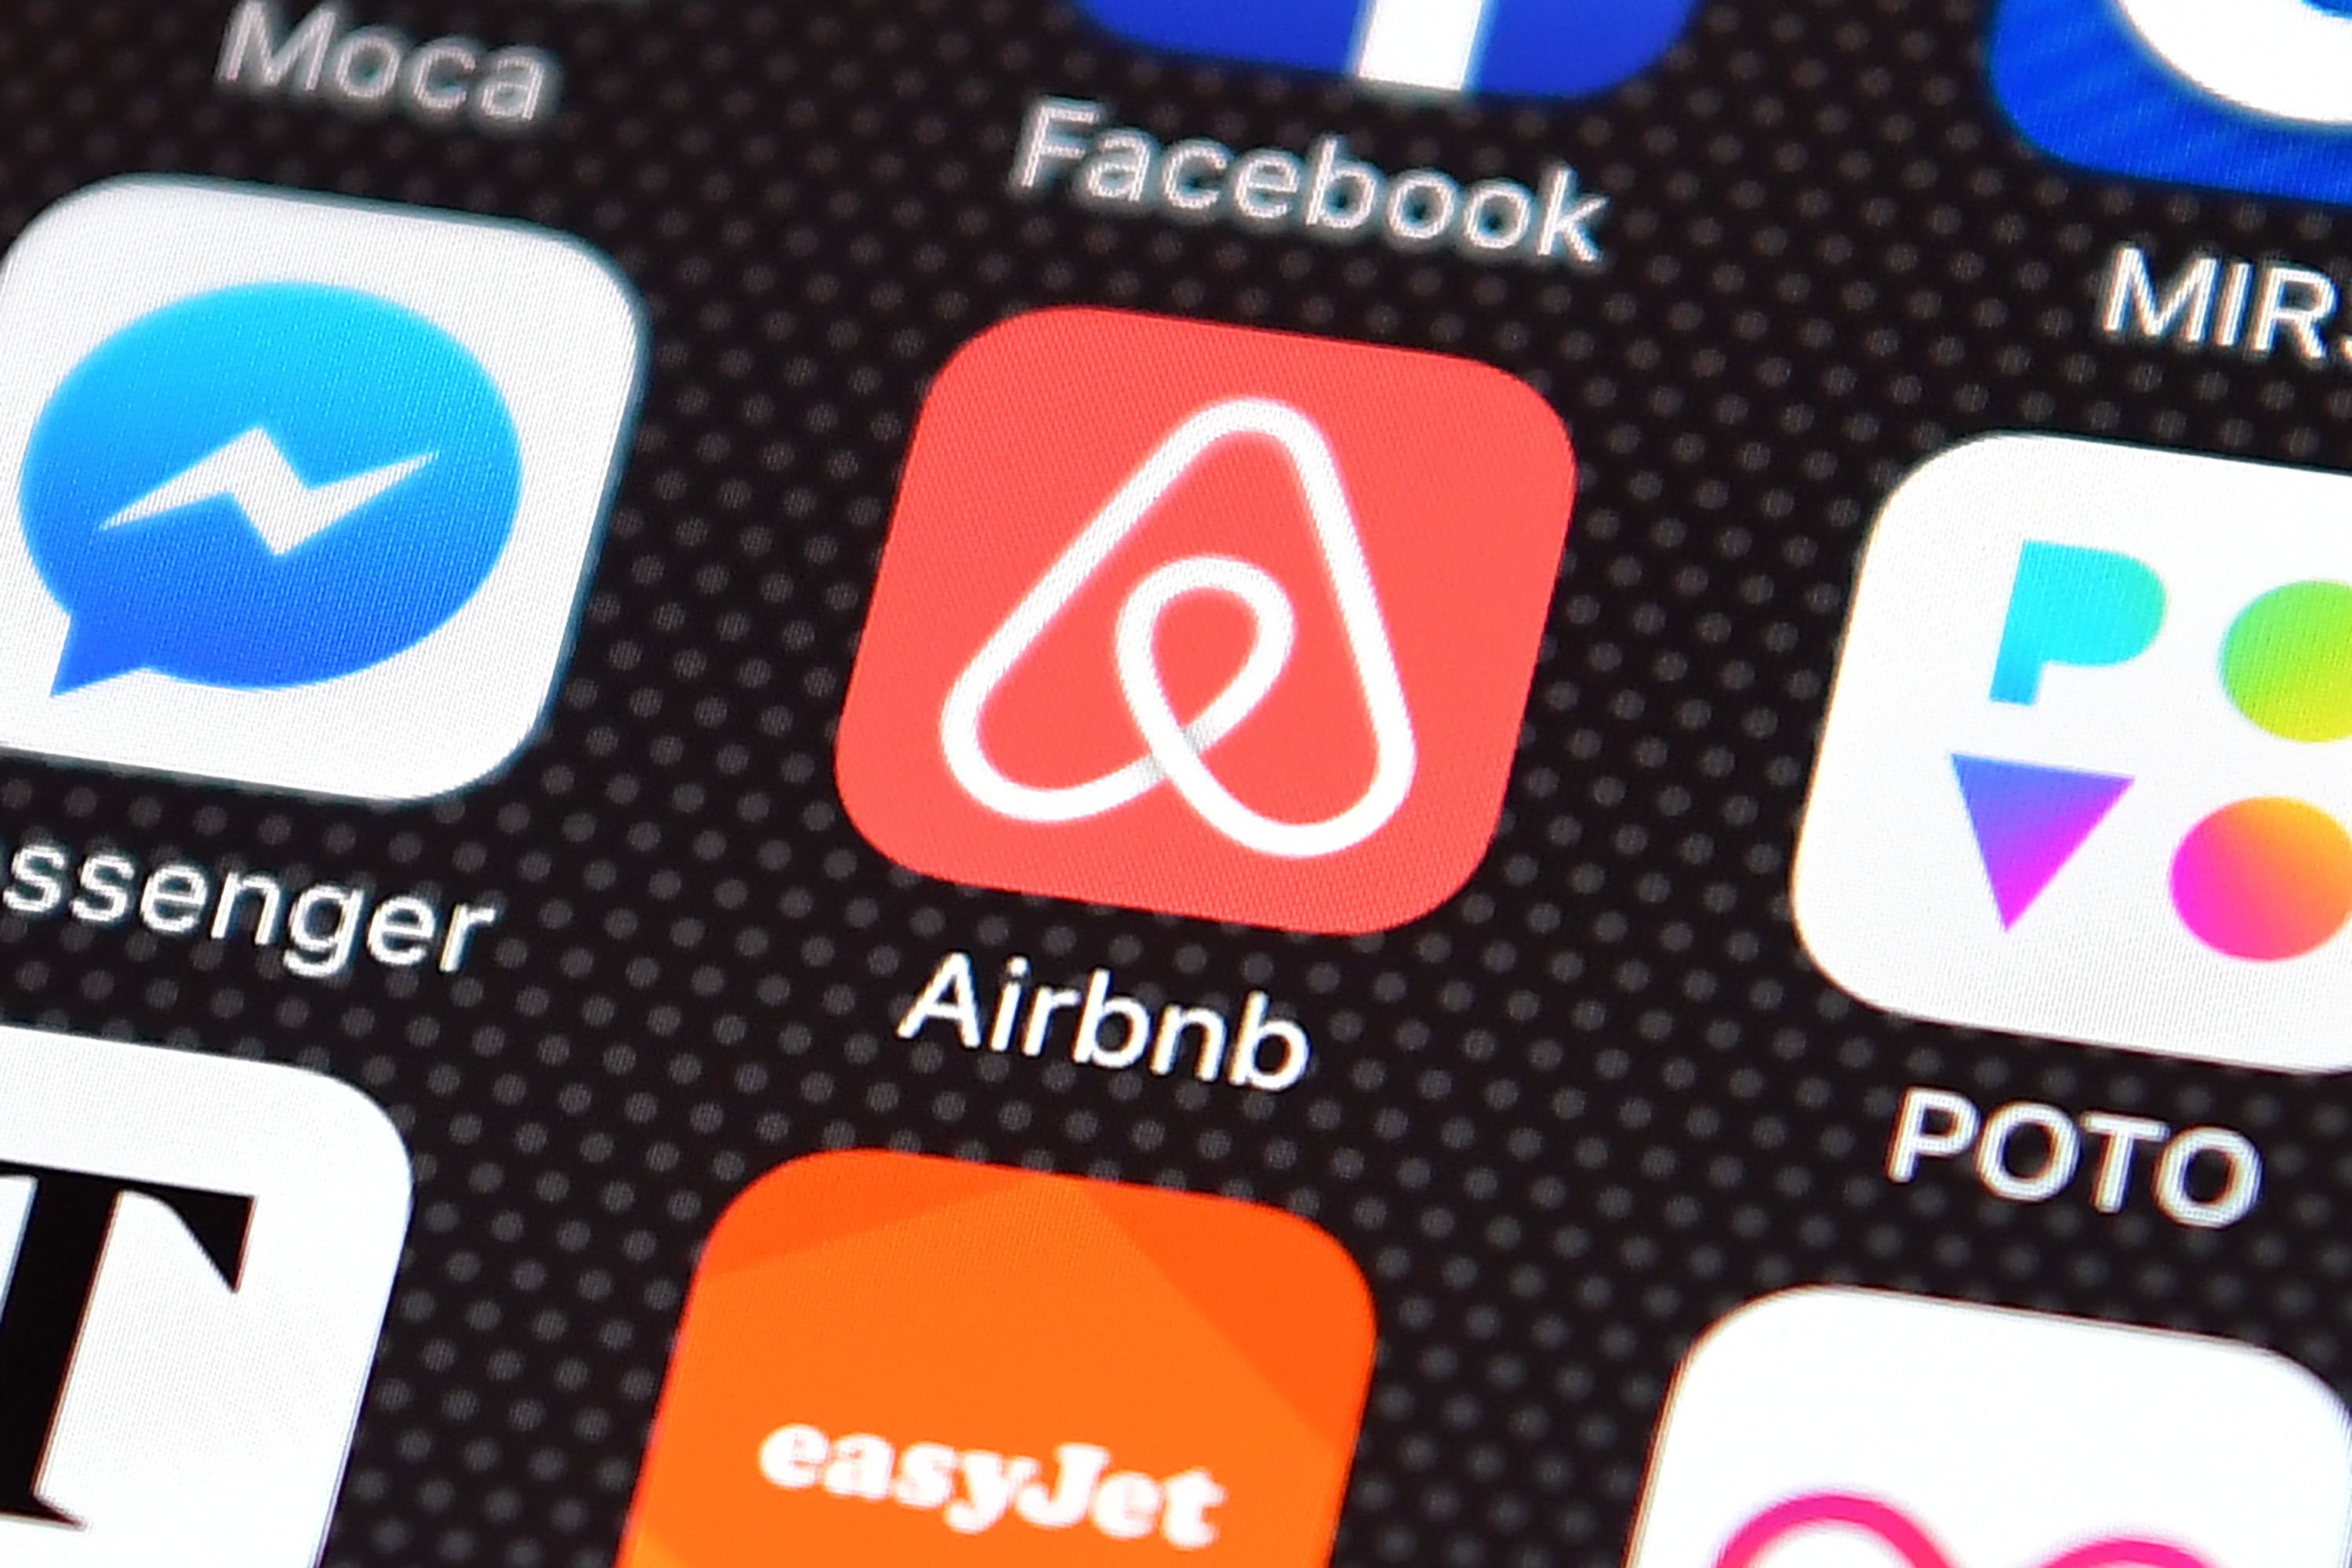 Airbnb might go for direct listing instead of an IPO